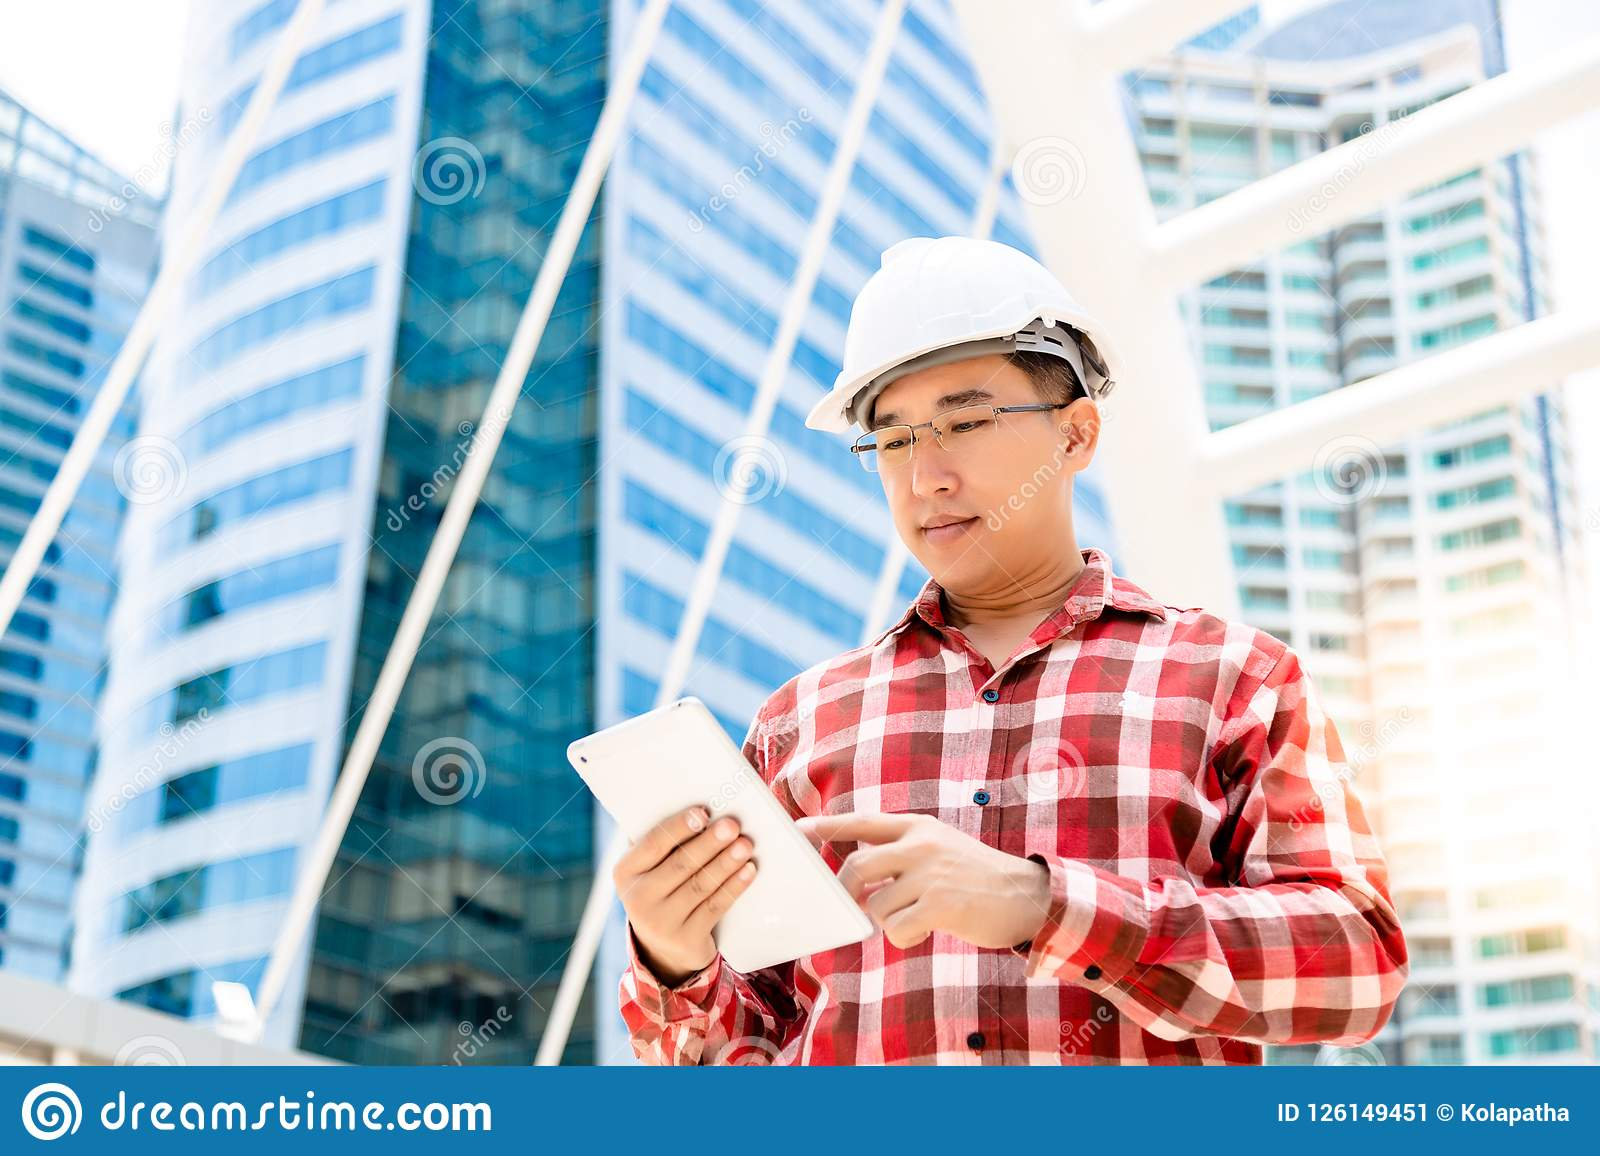 Executive engineer guy is using tablet for record his work or sc